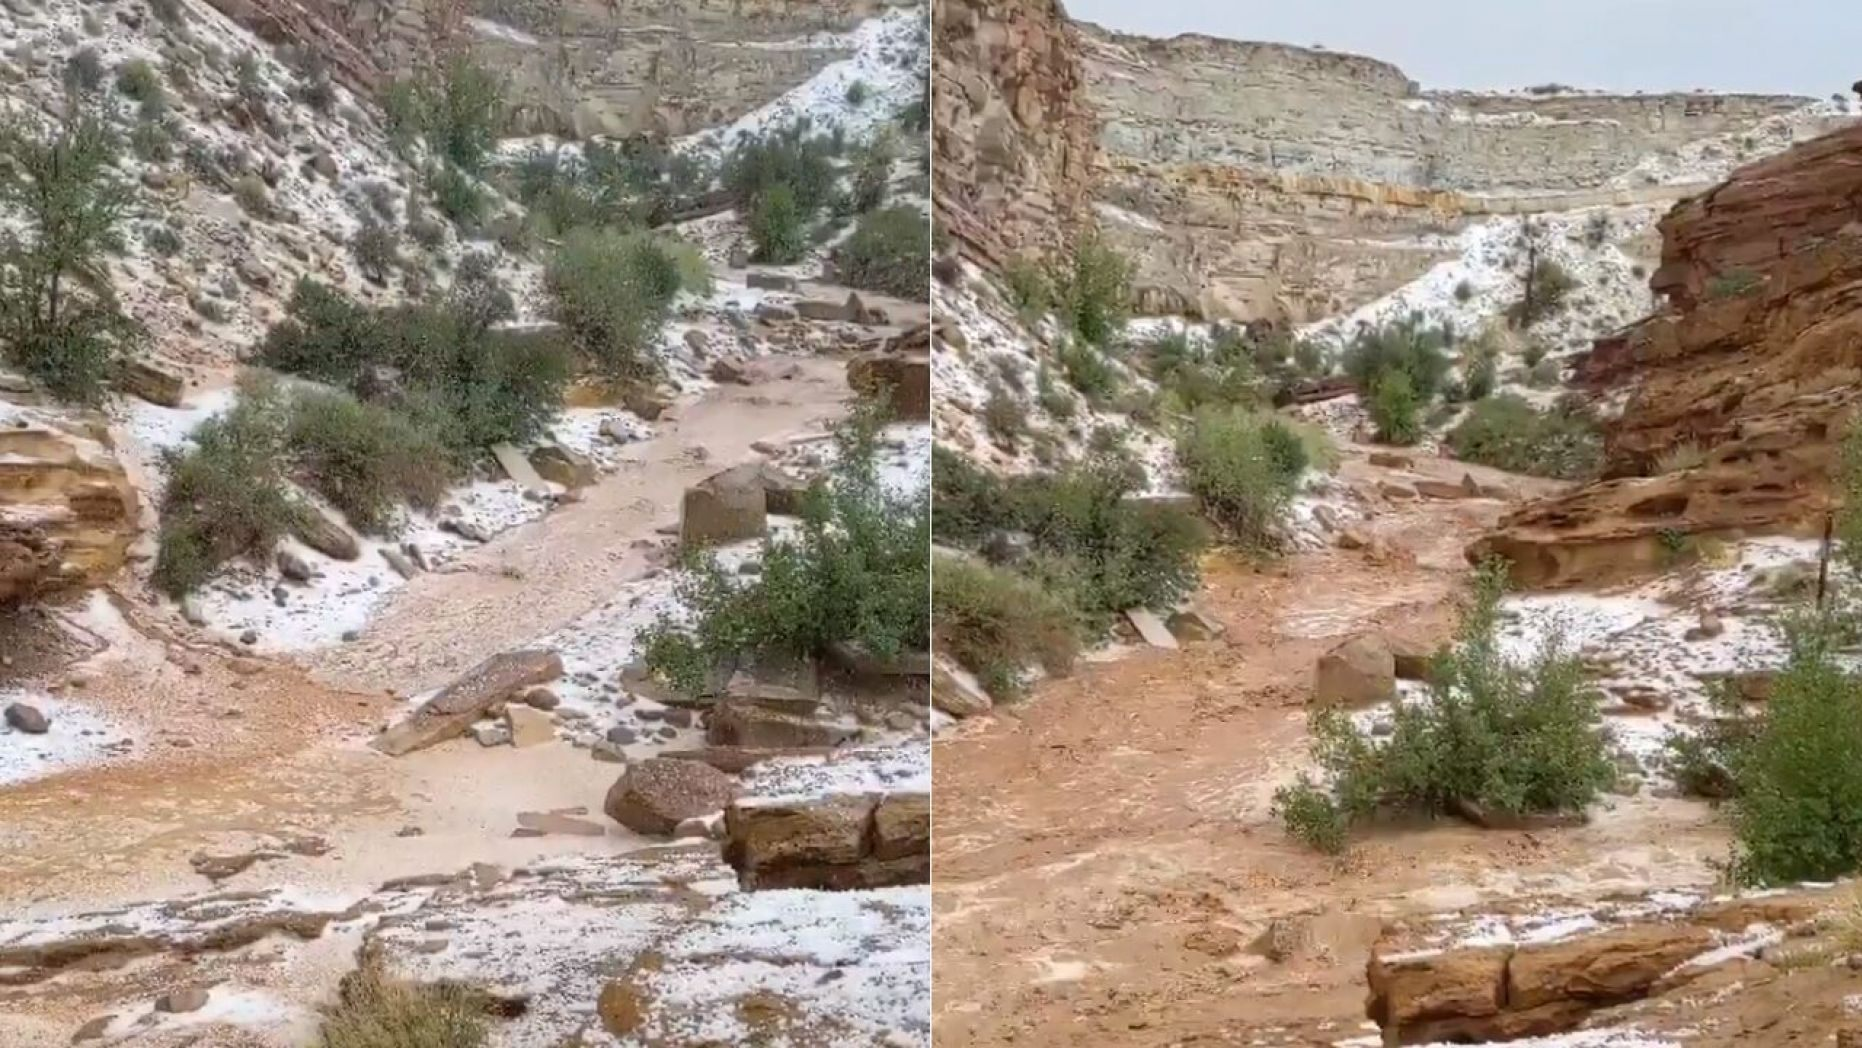 Flooding hit Little Wild Horse Canyon on Monday after an an isolated thunderstorm storm crossed nearby Goblin Valley State Park,